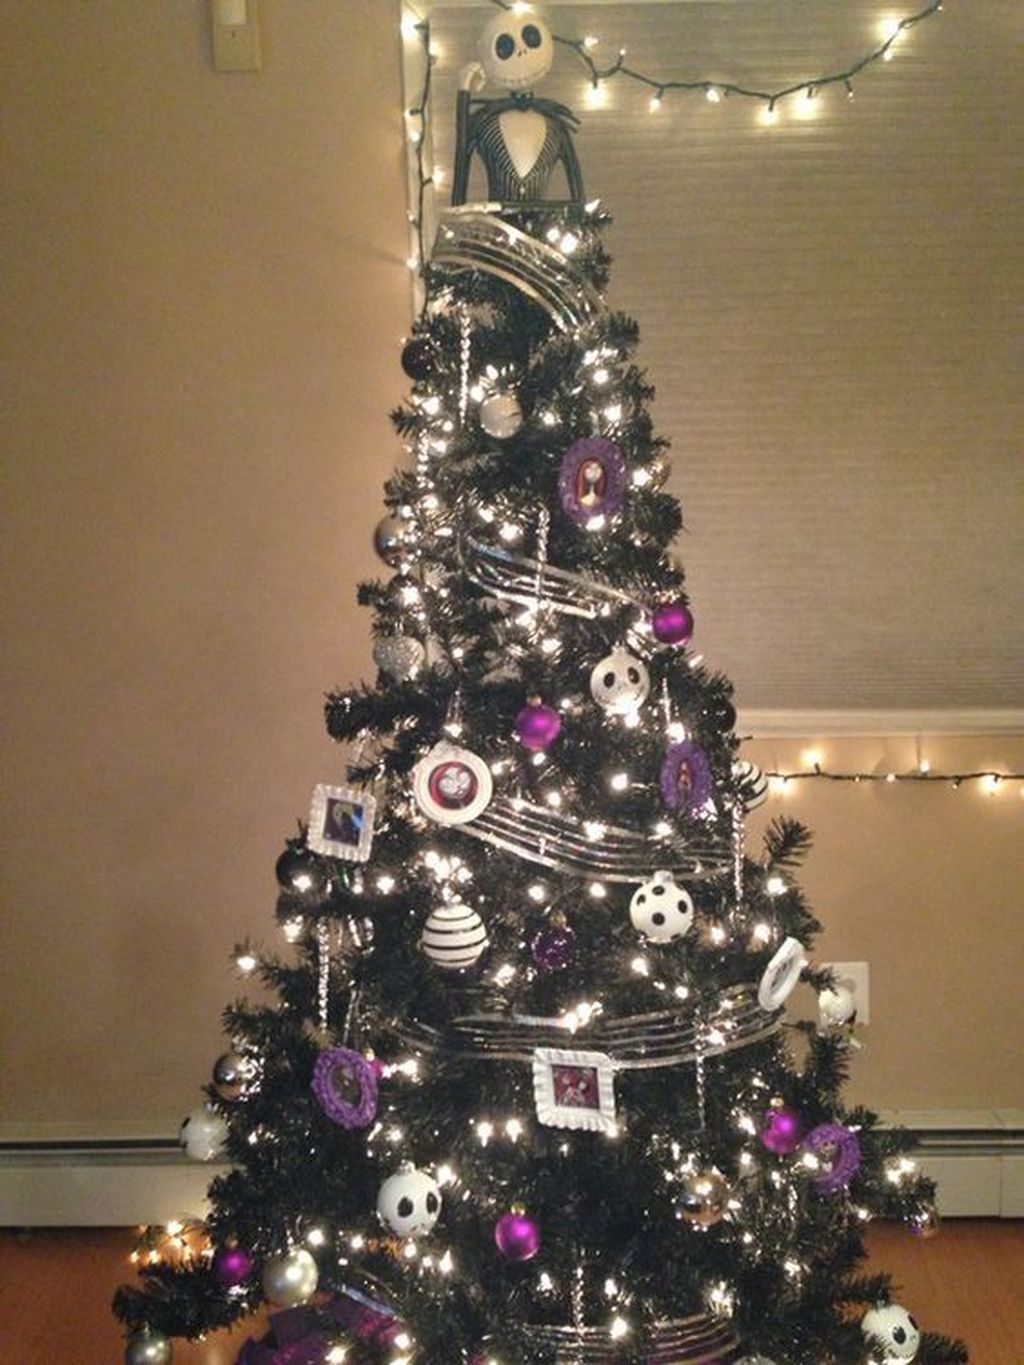 Amazing Halloween Christmas Tree Ideas You Must Have #blackchristmastreeideas Amazing Halloween Christmas Tree Ideas You Must Have #blackchristmastreeideas